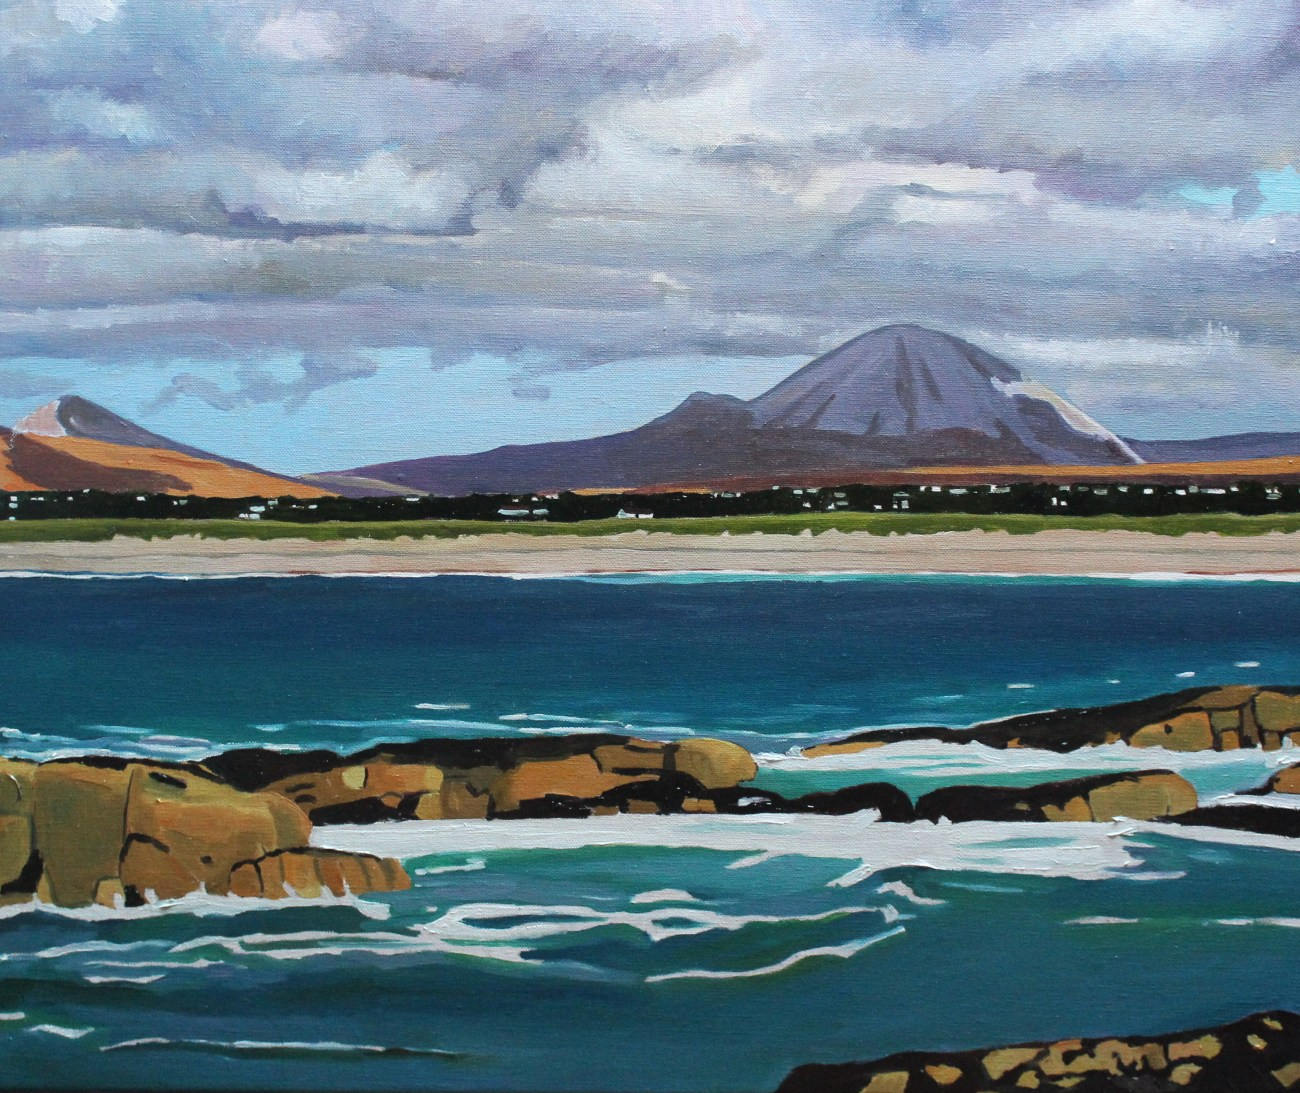 Landscape painting in Oil of Mount Errigal, Donegal, Ireland